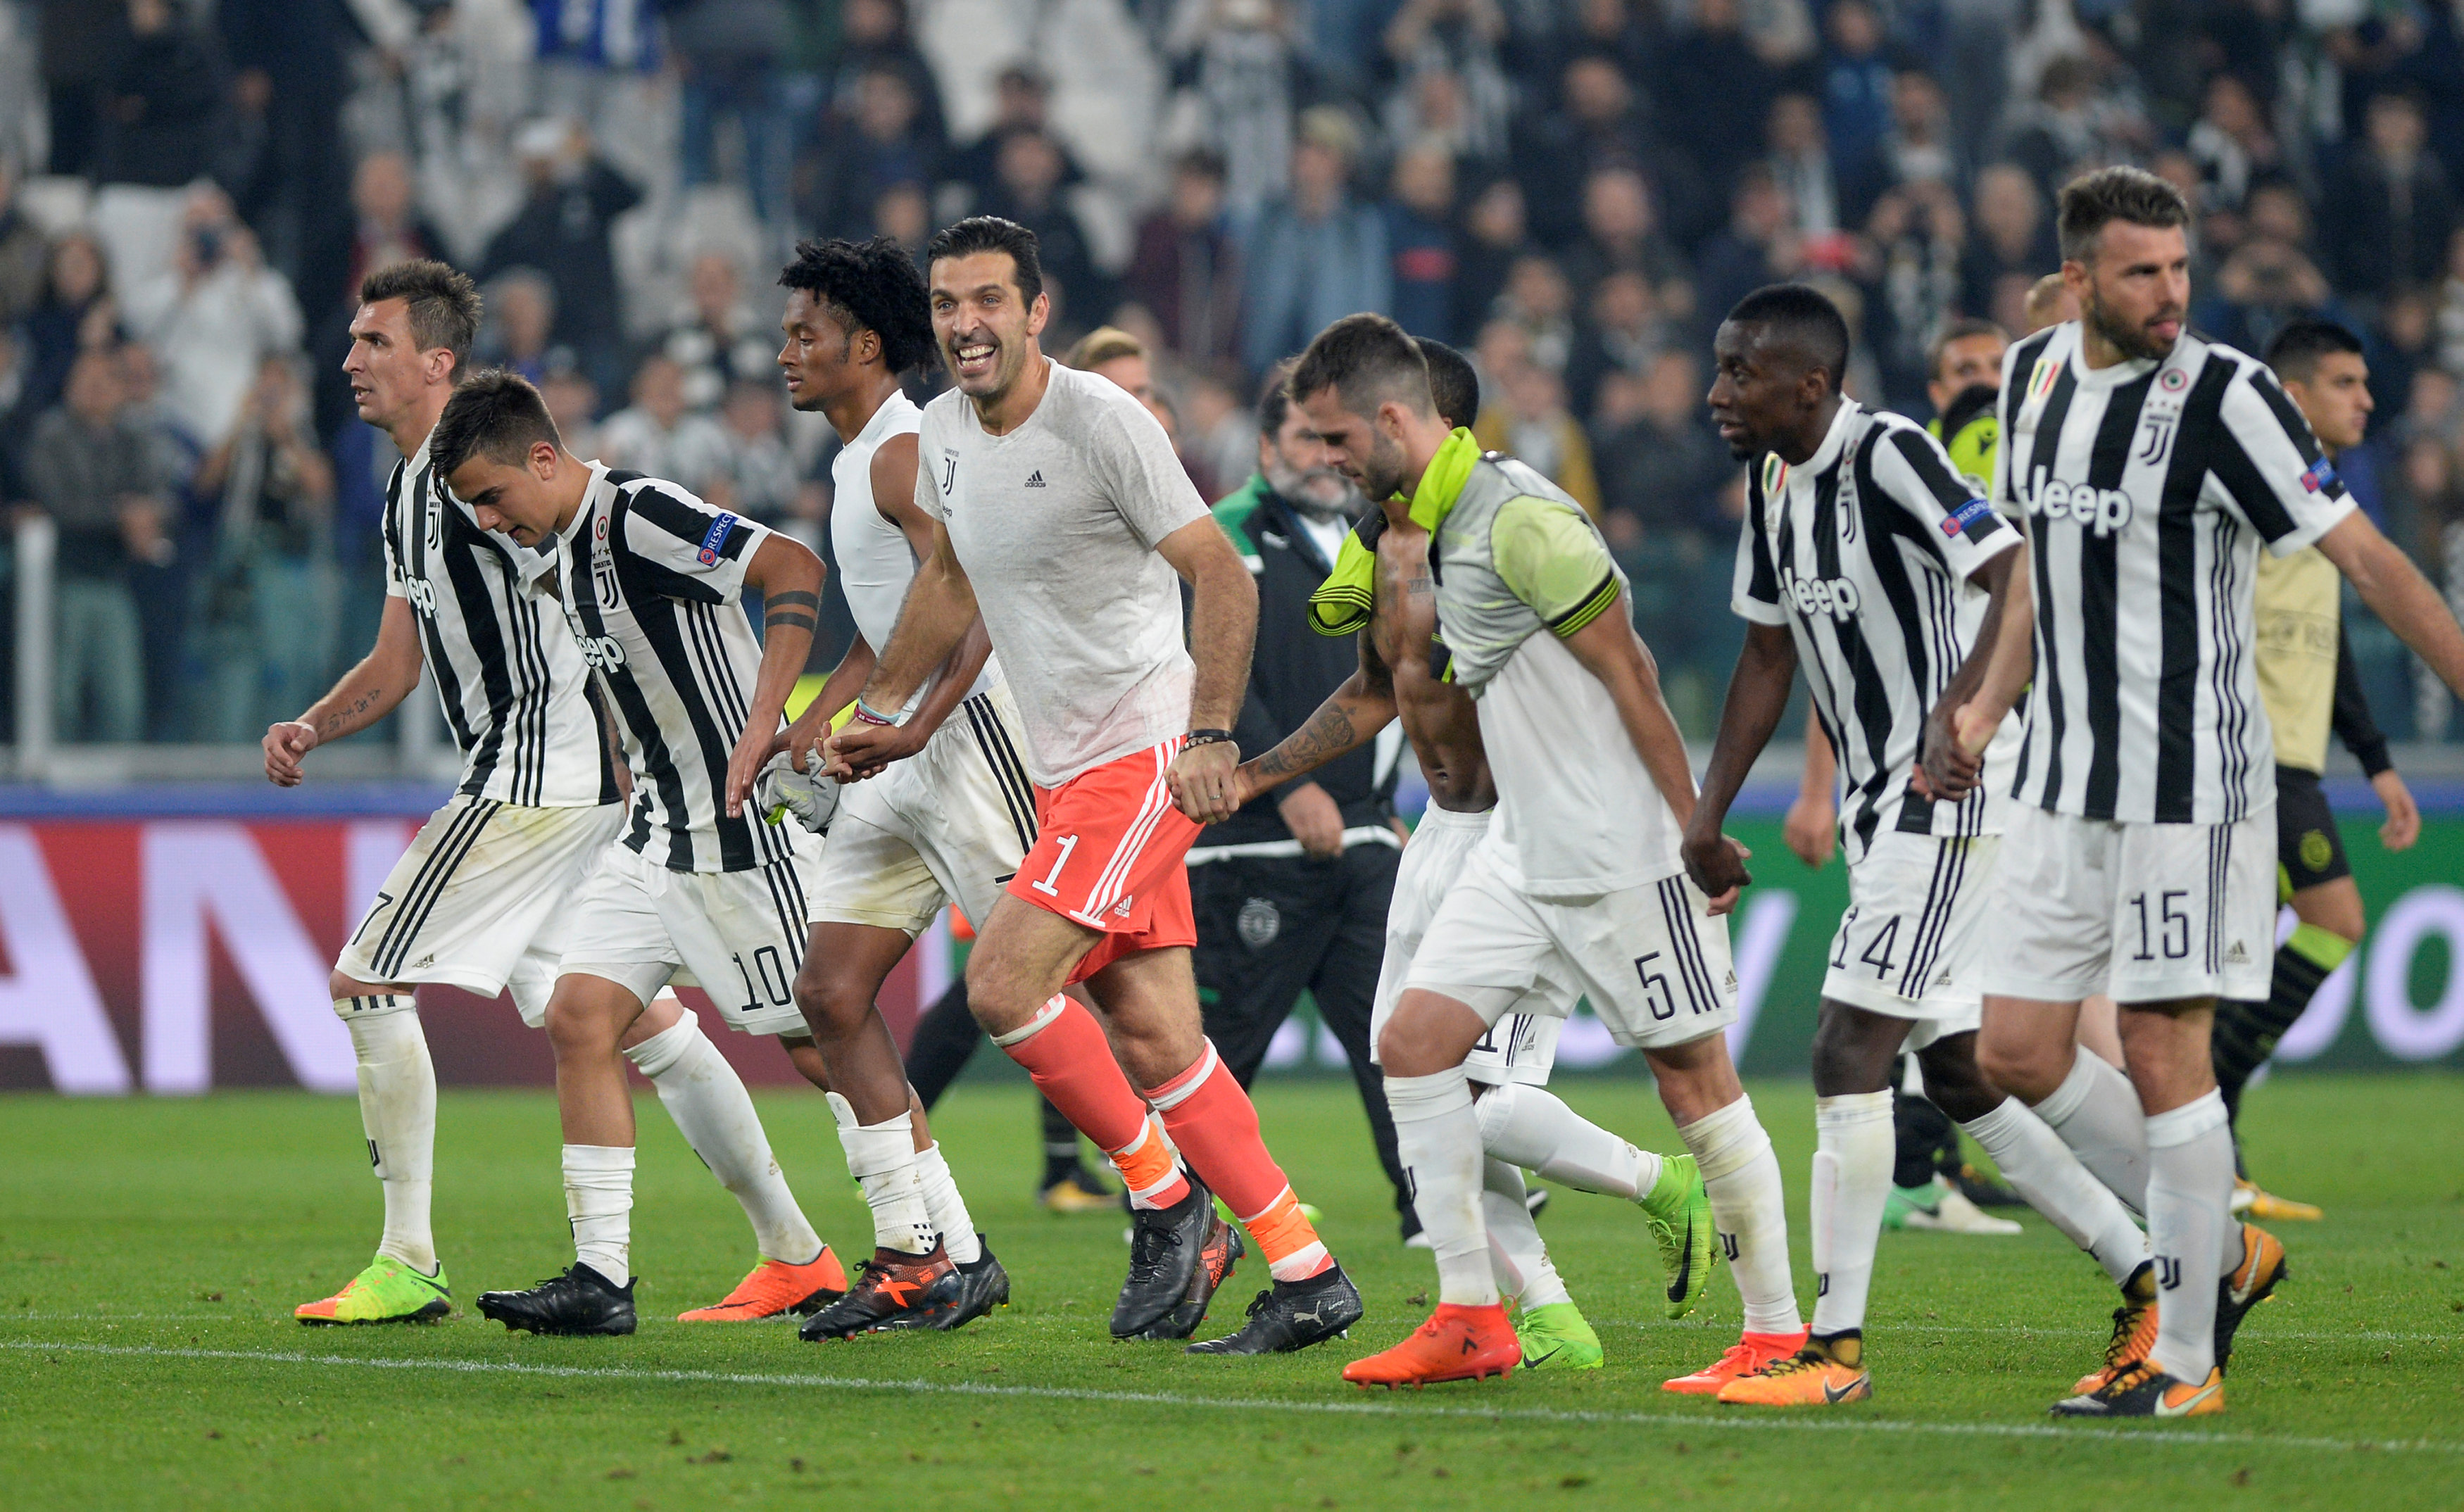 Champions League: Juventus thắng ngược Sporting CP